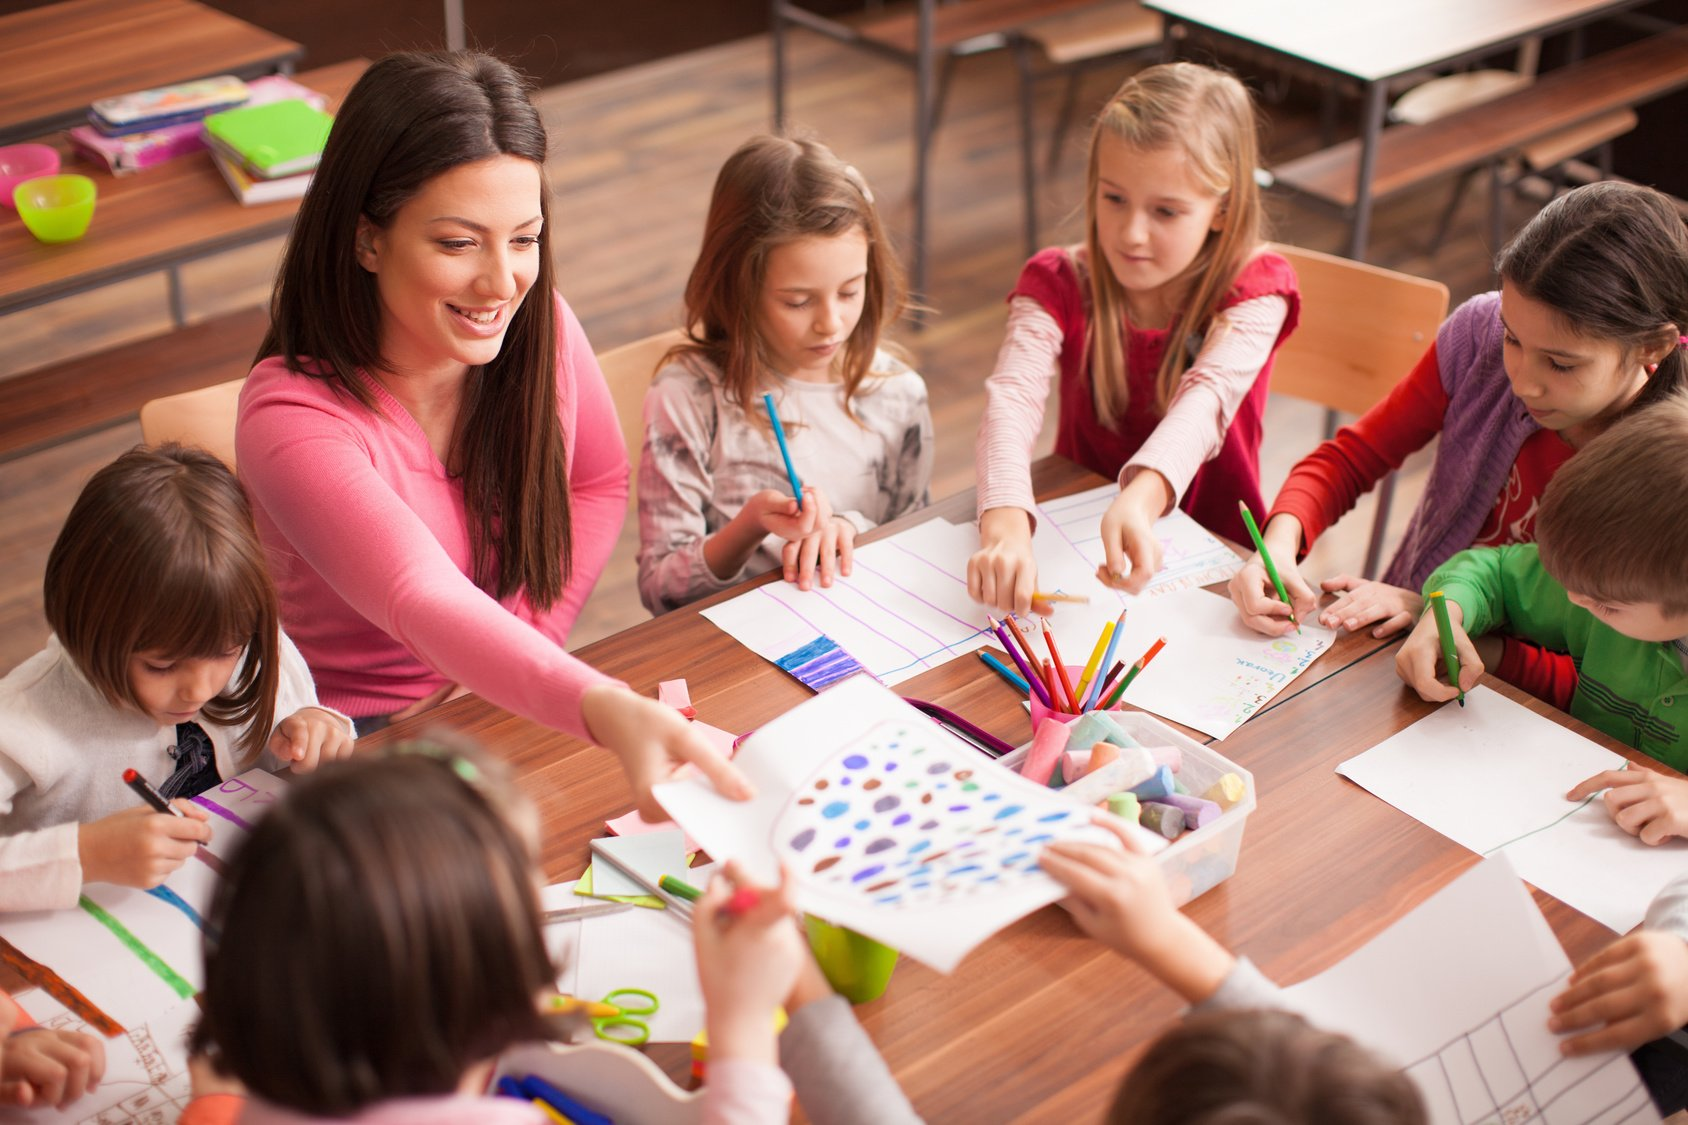 the role of a teacher differs depending on what age your students are